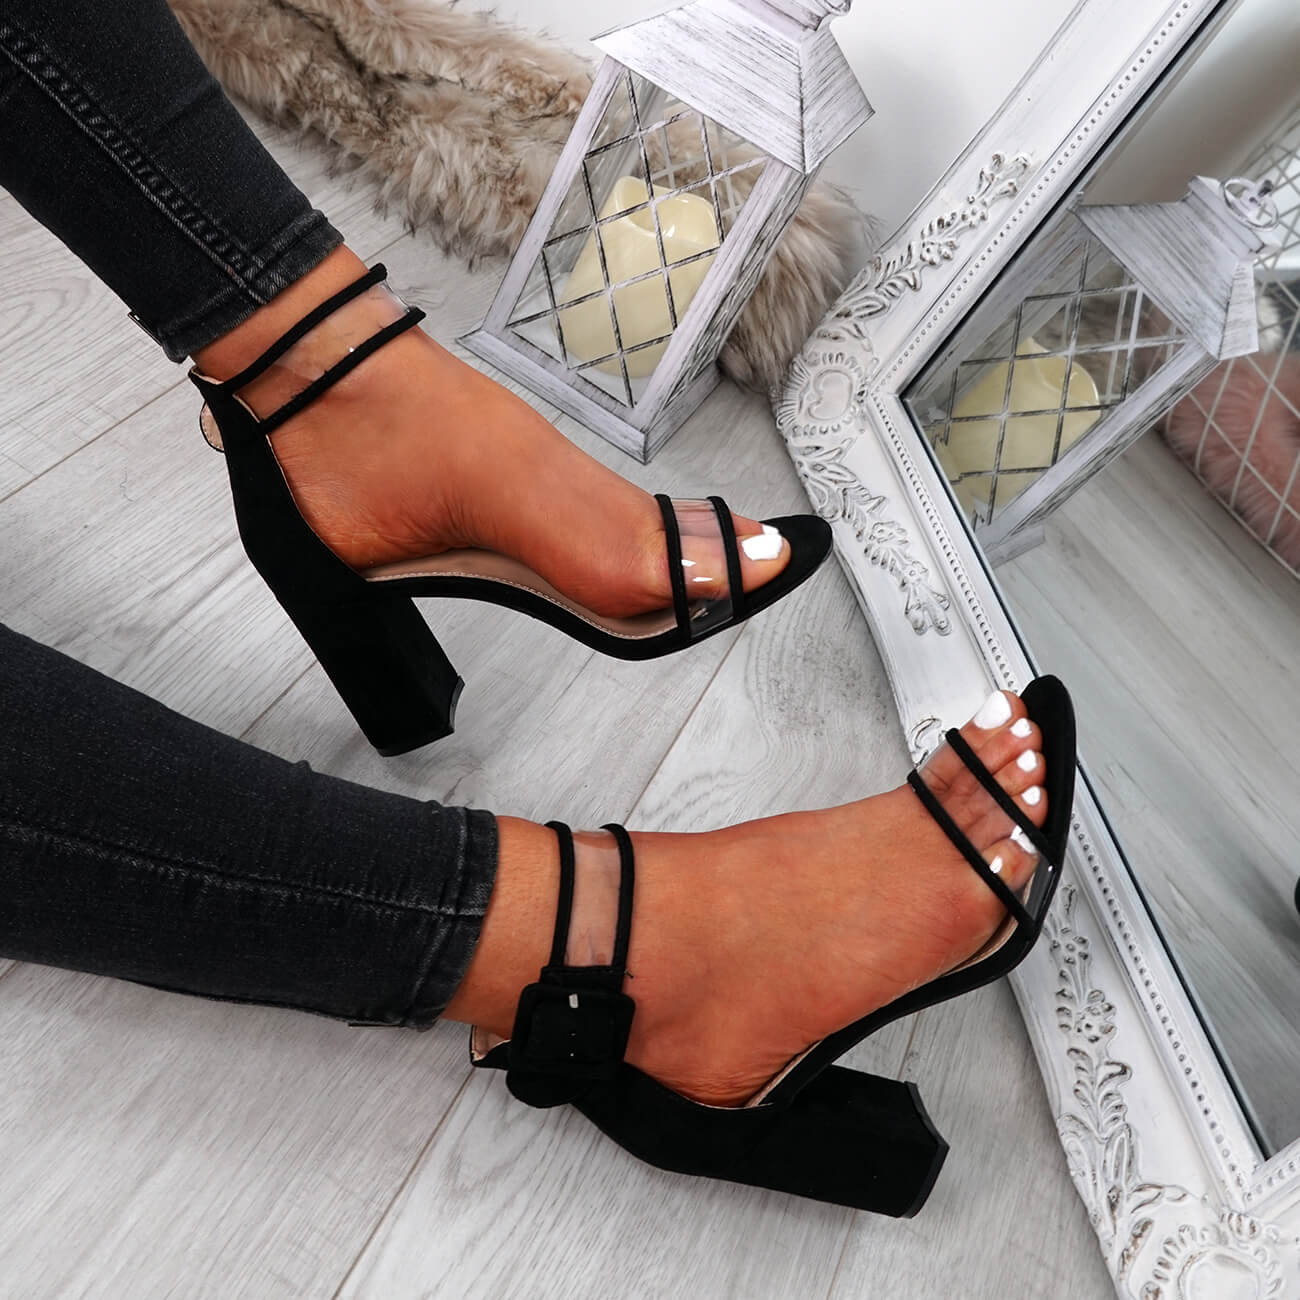 WOMENS-LADIES-ANKLE-STRAP-PEEP-TOE-HIGH-BLOCK-HEEL-SANDALS-FASHION-SHOES thumbnail 15